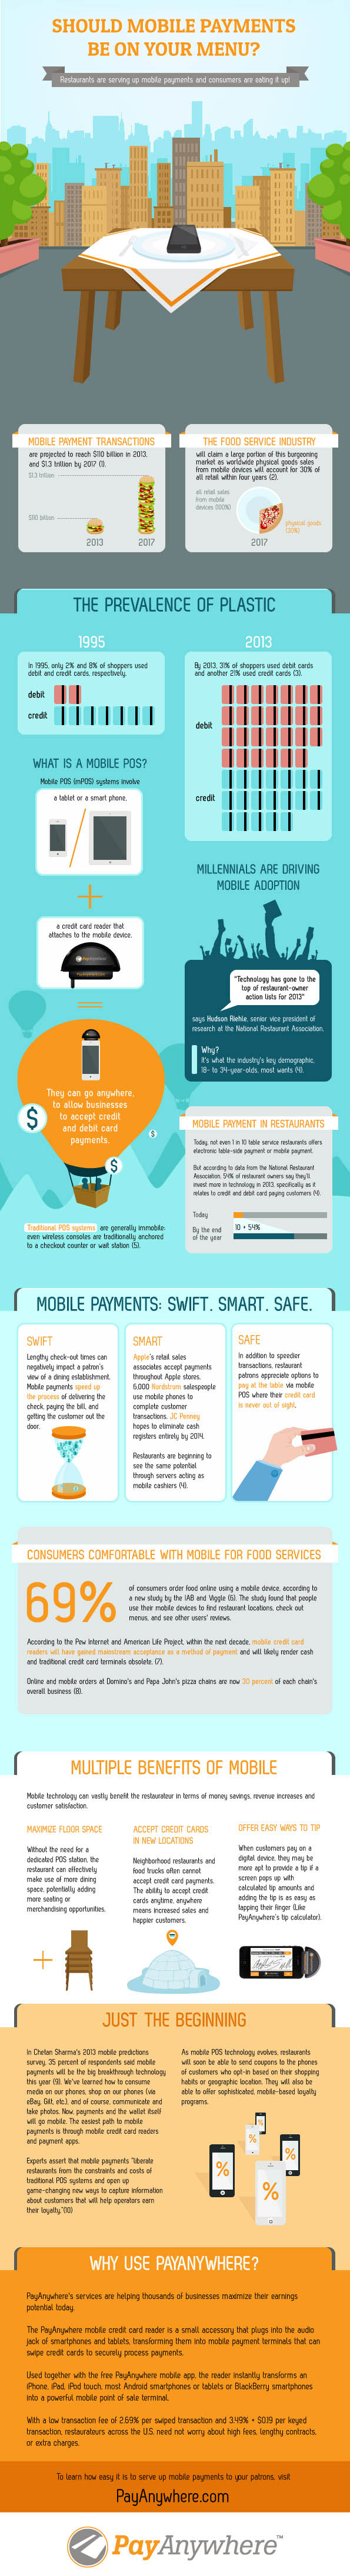 Mobile Payments in Restaurants-Infographic